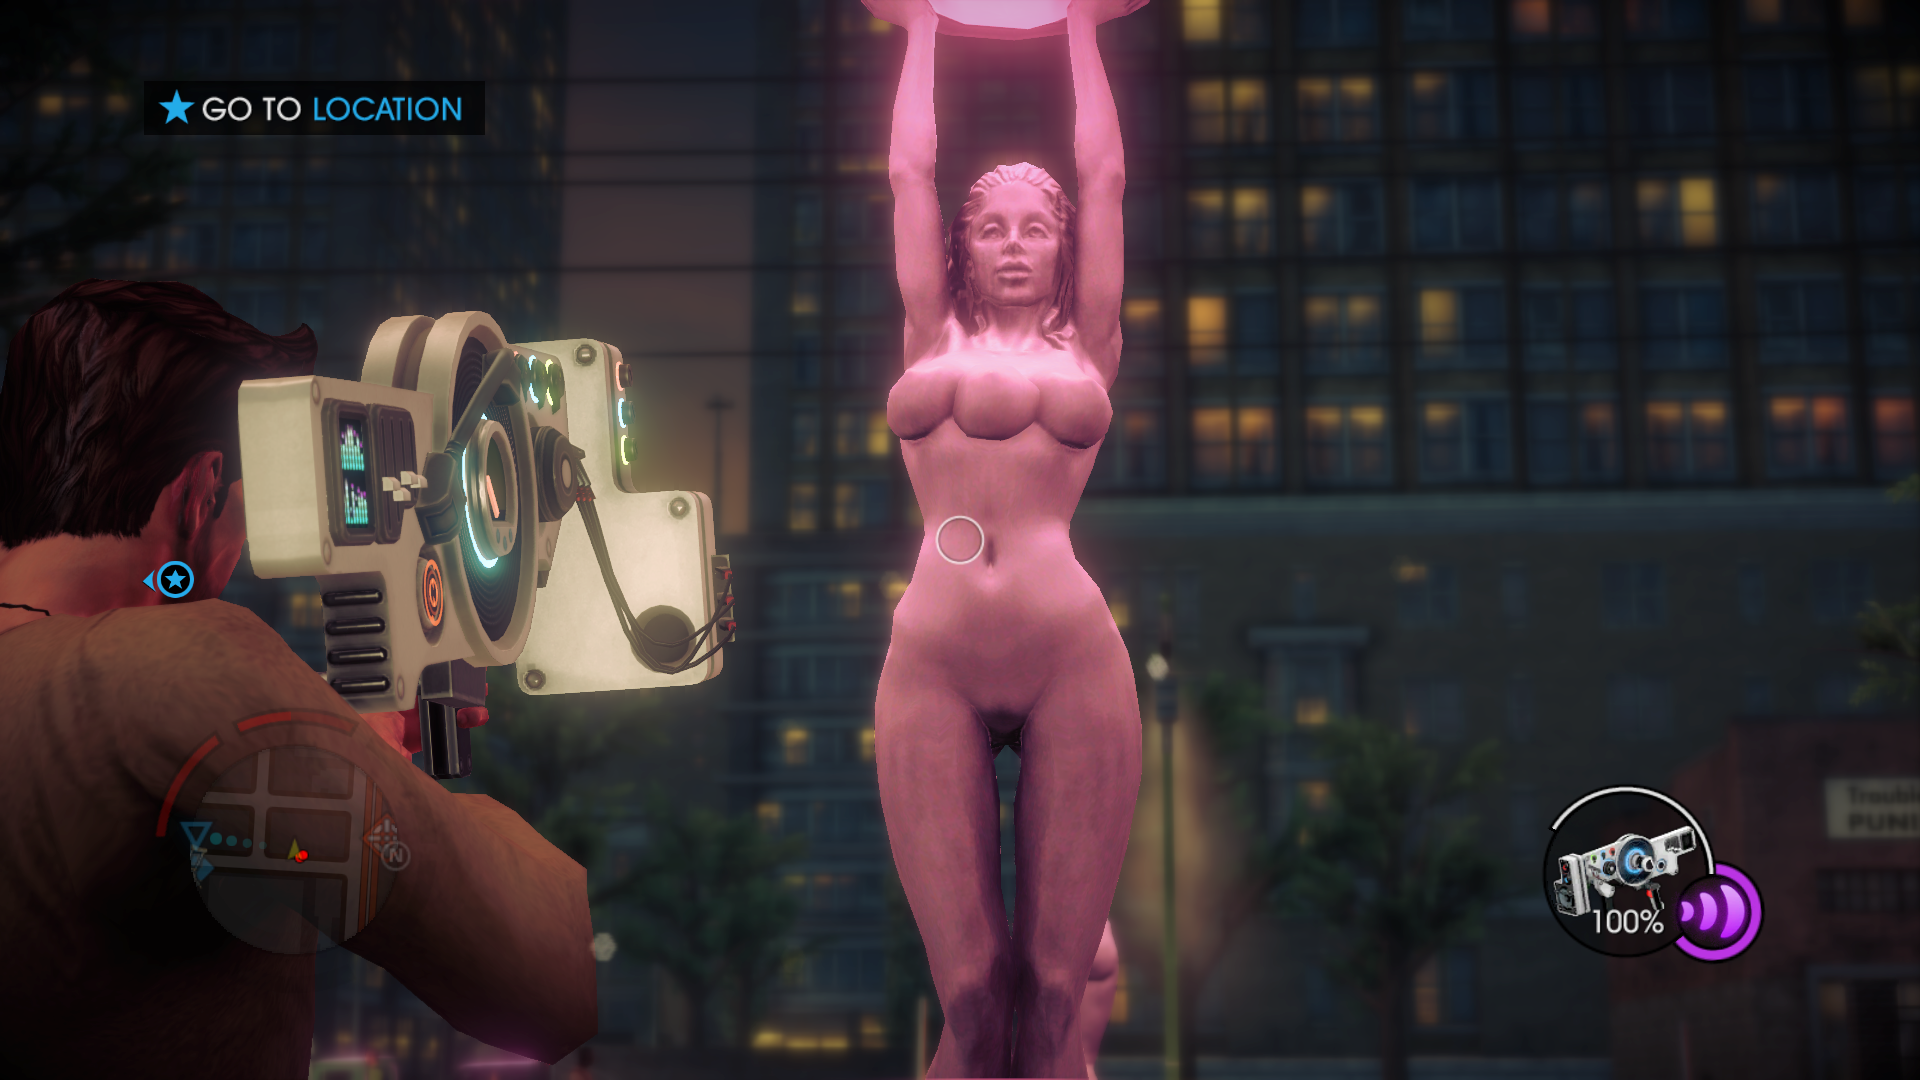 Saints row naked sex hardcore picture